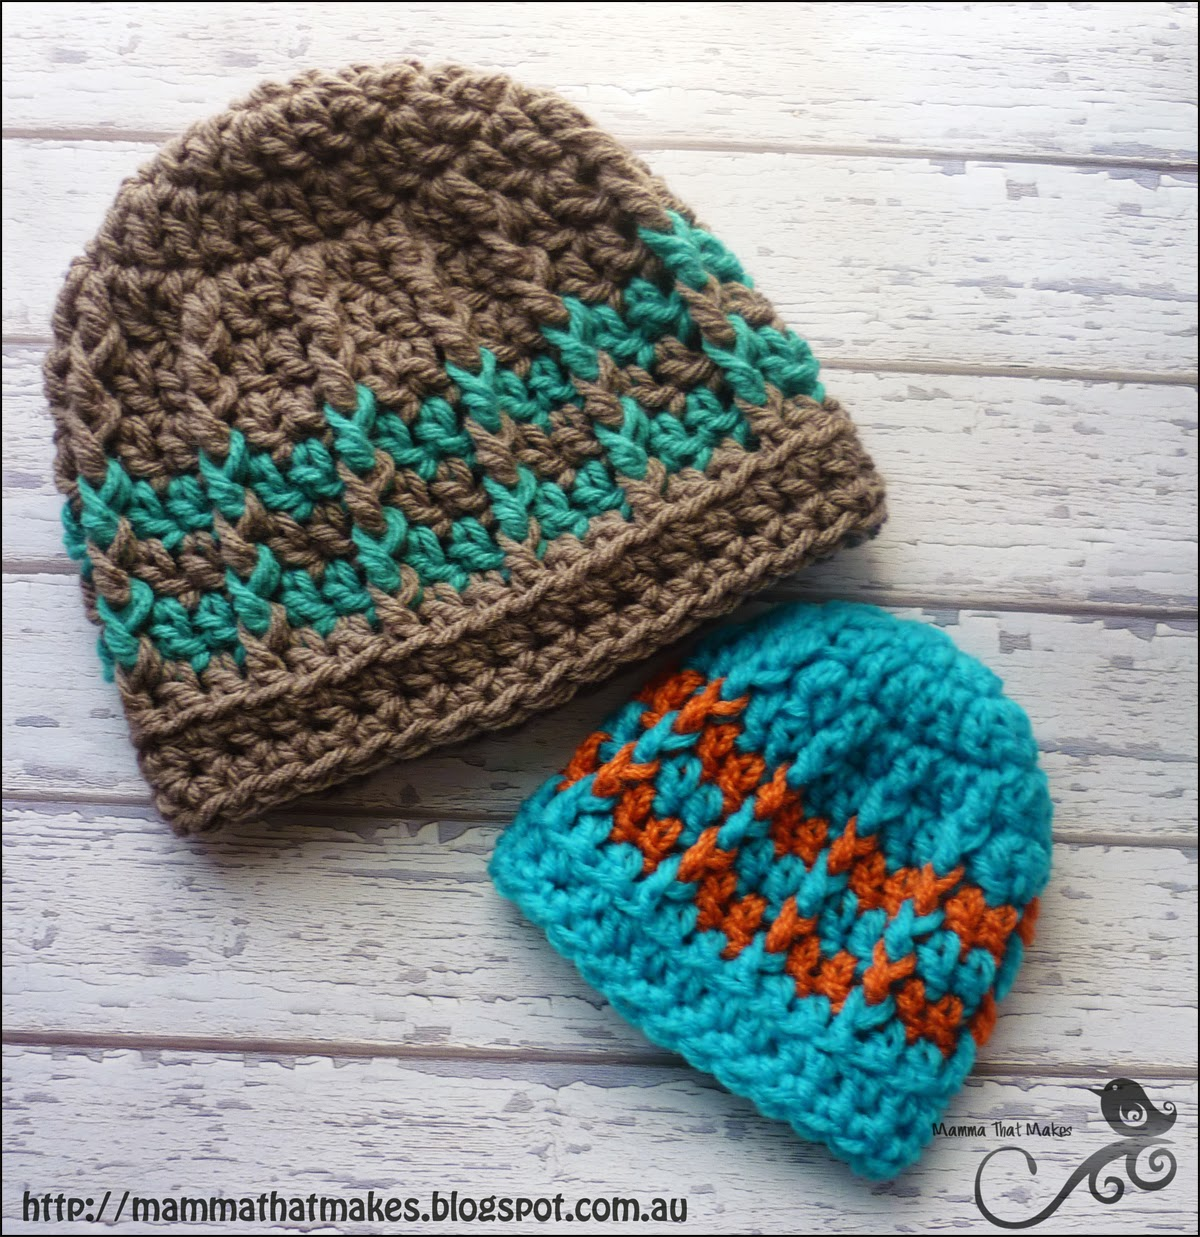 Crochet Patterns To Donate : Mamma That Makes: Michael Beanie - Free Crochet Pattern